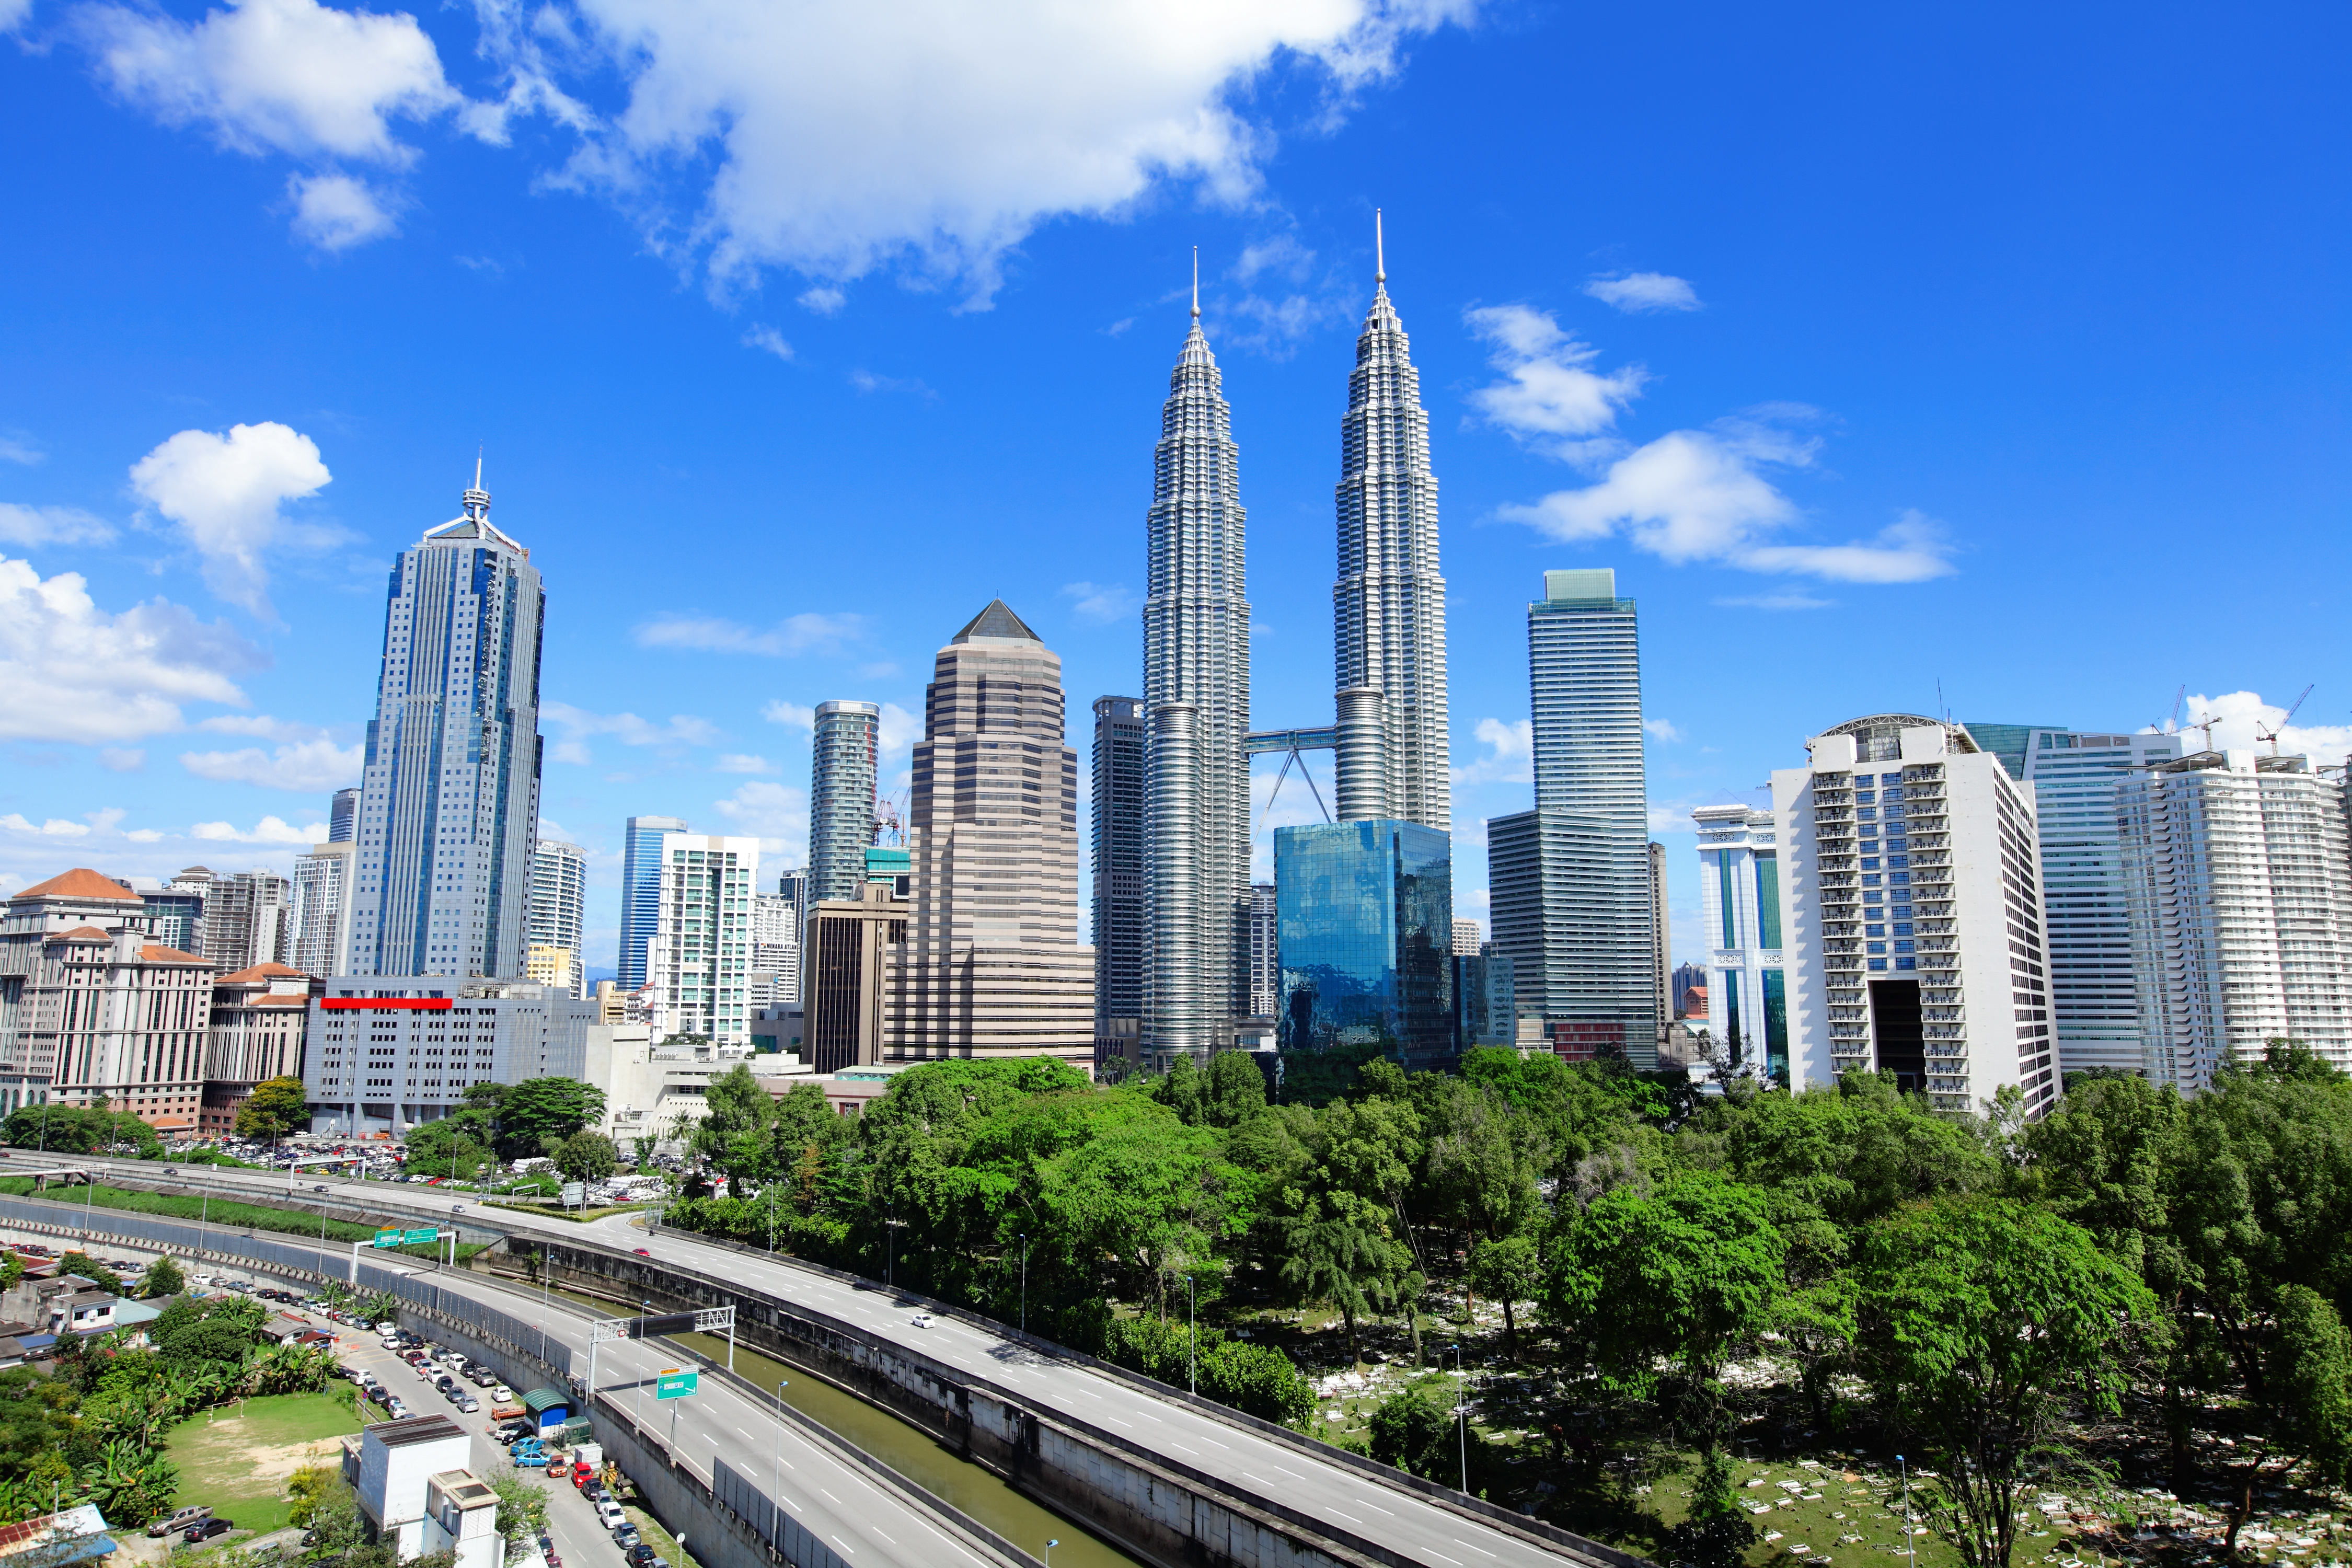 Kuala Lumpur Beautiful Hd Wallpapers: Kuala Lumpur Wallpapers, Pictures, Images